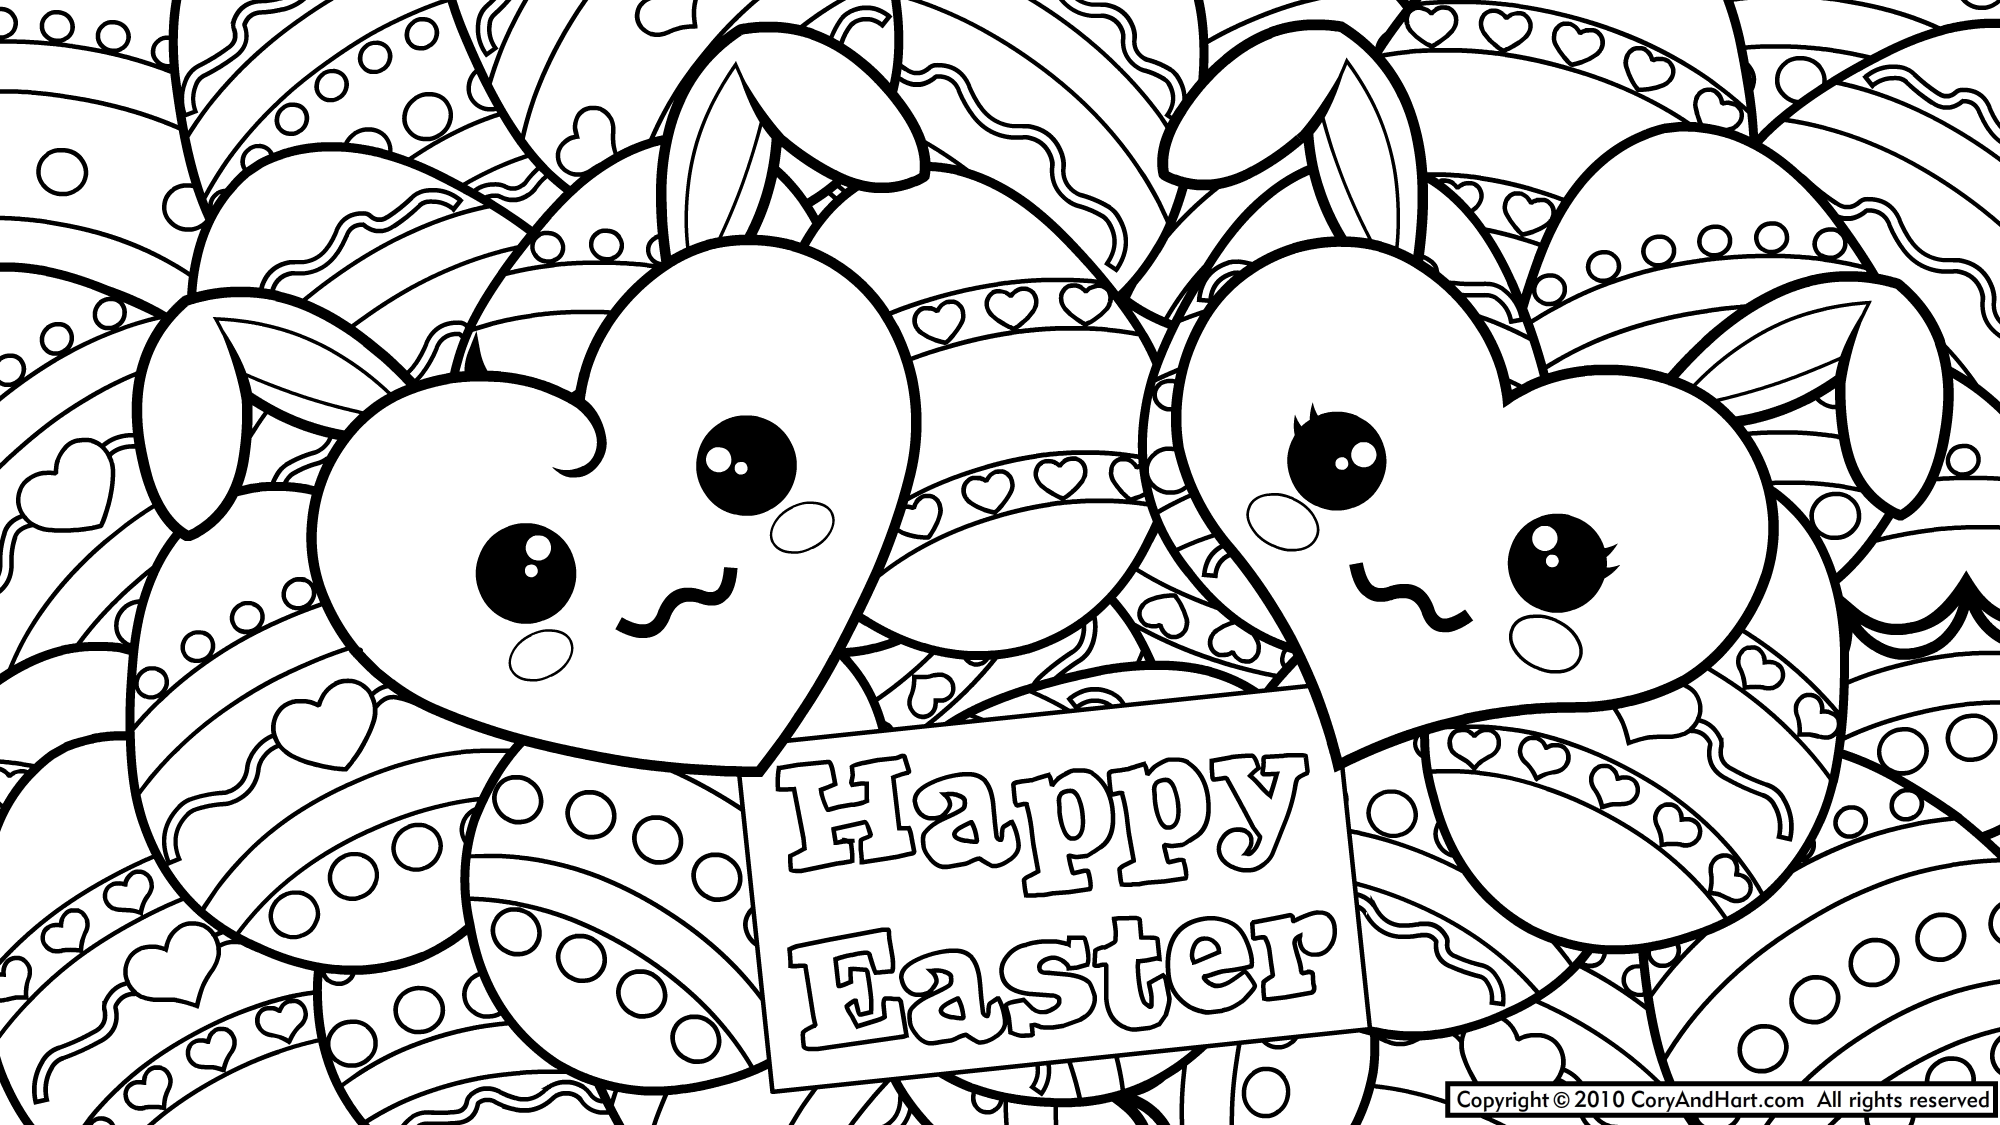 Easter Coloring Pages For Adults - Coloring Home